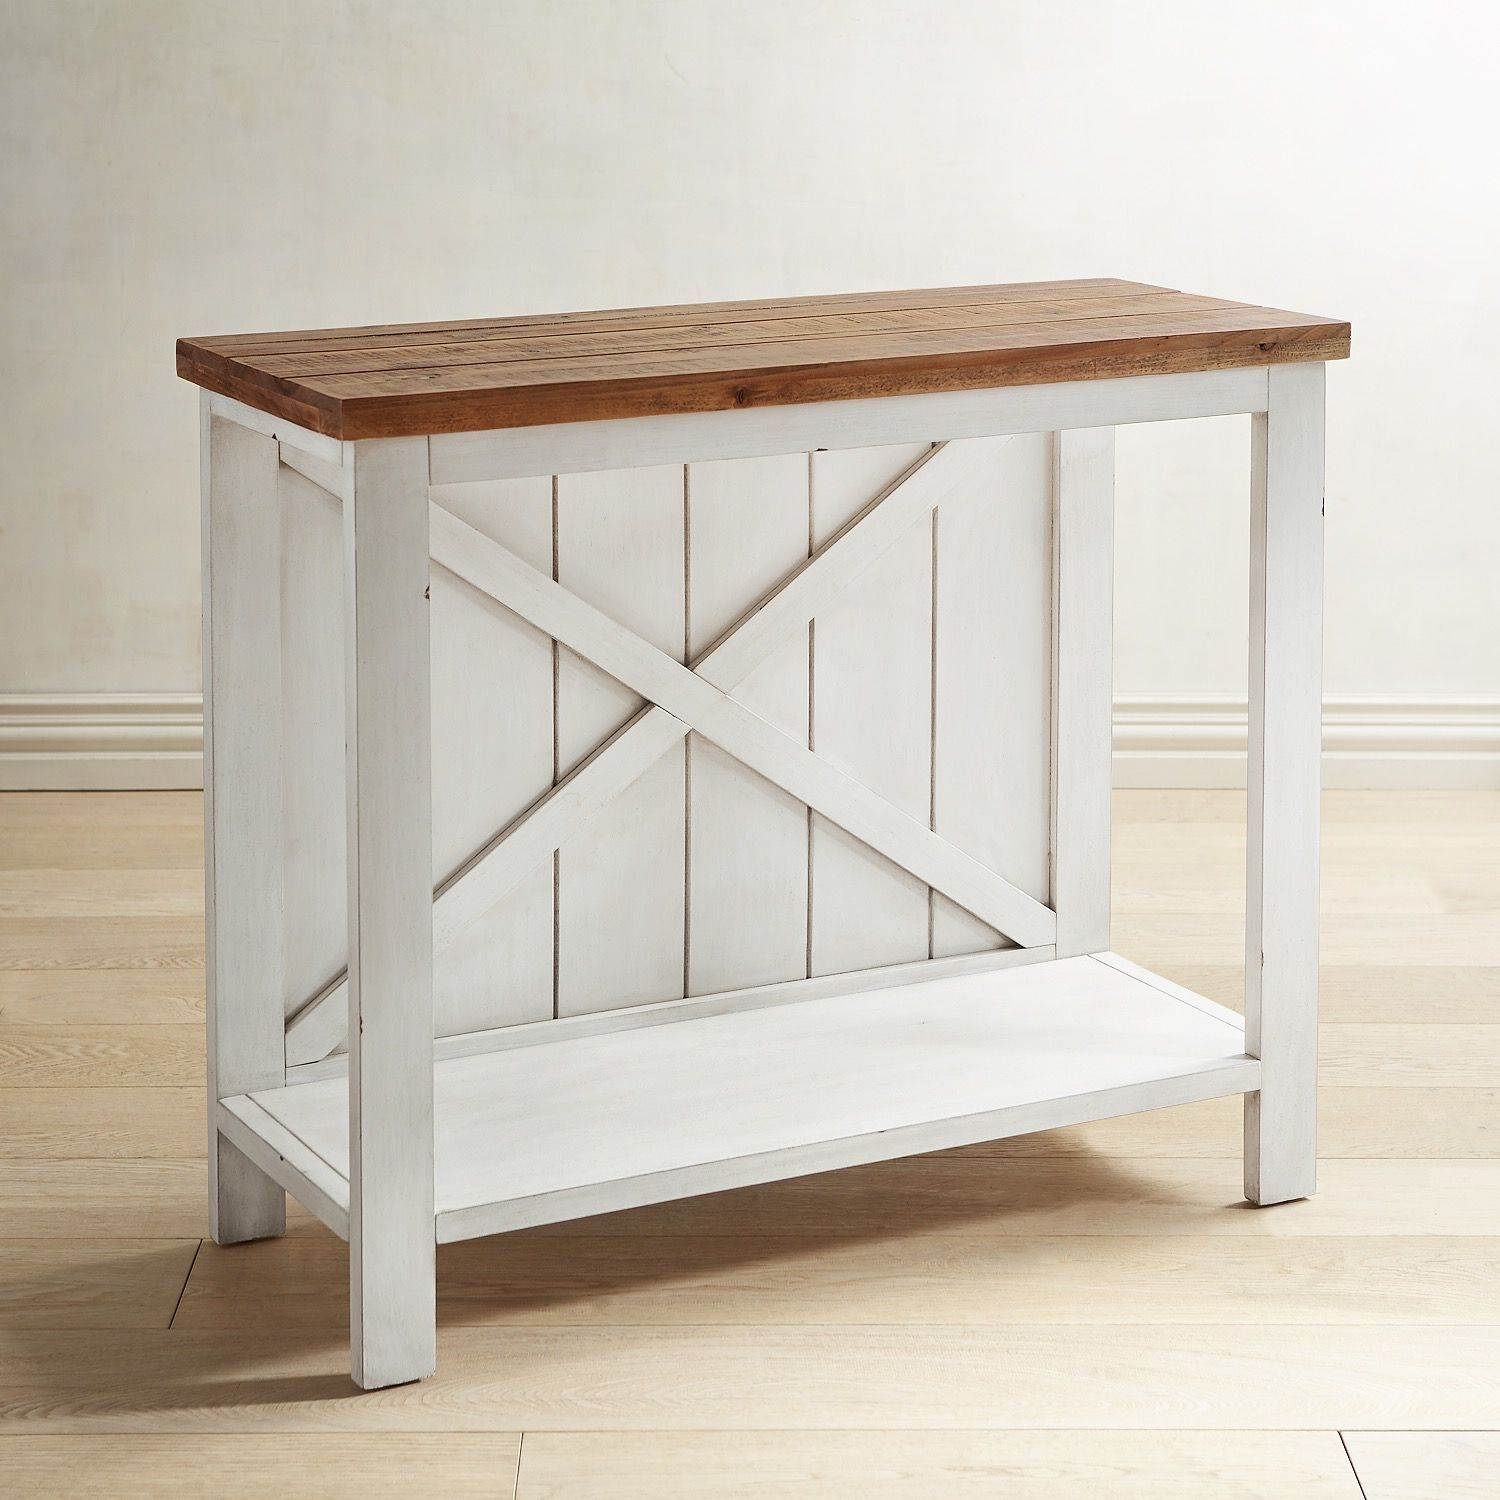 farmhouse white small console table new home accent pier imports martin office furniture globe lighting chrome and wood end tables mirrored bedside lamps ashley coffee wall decor